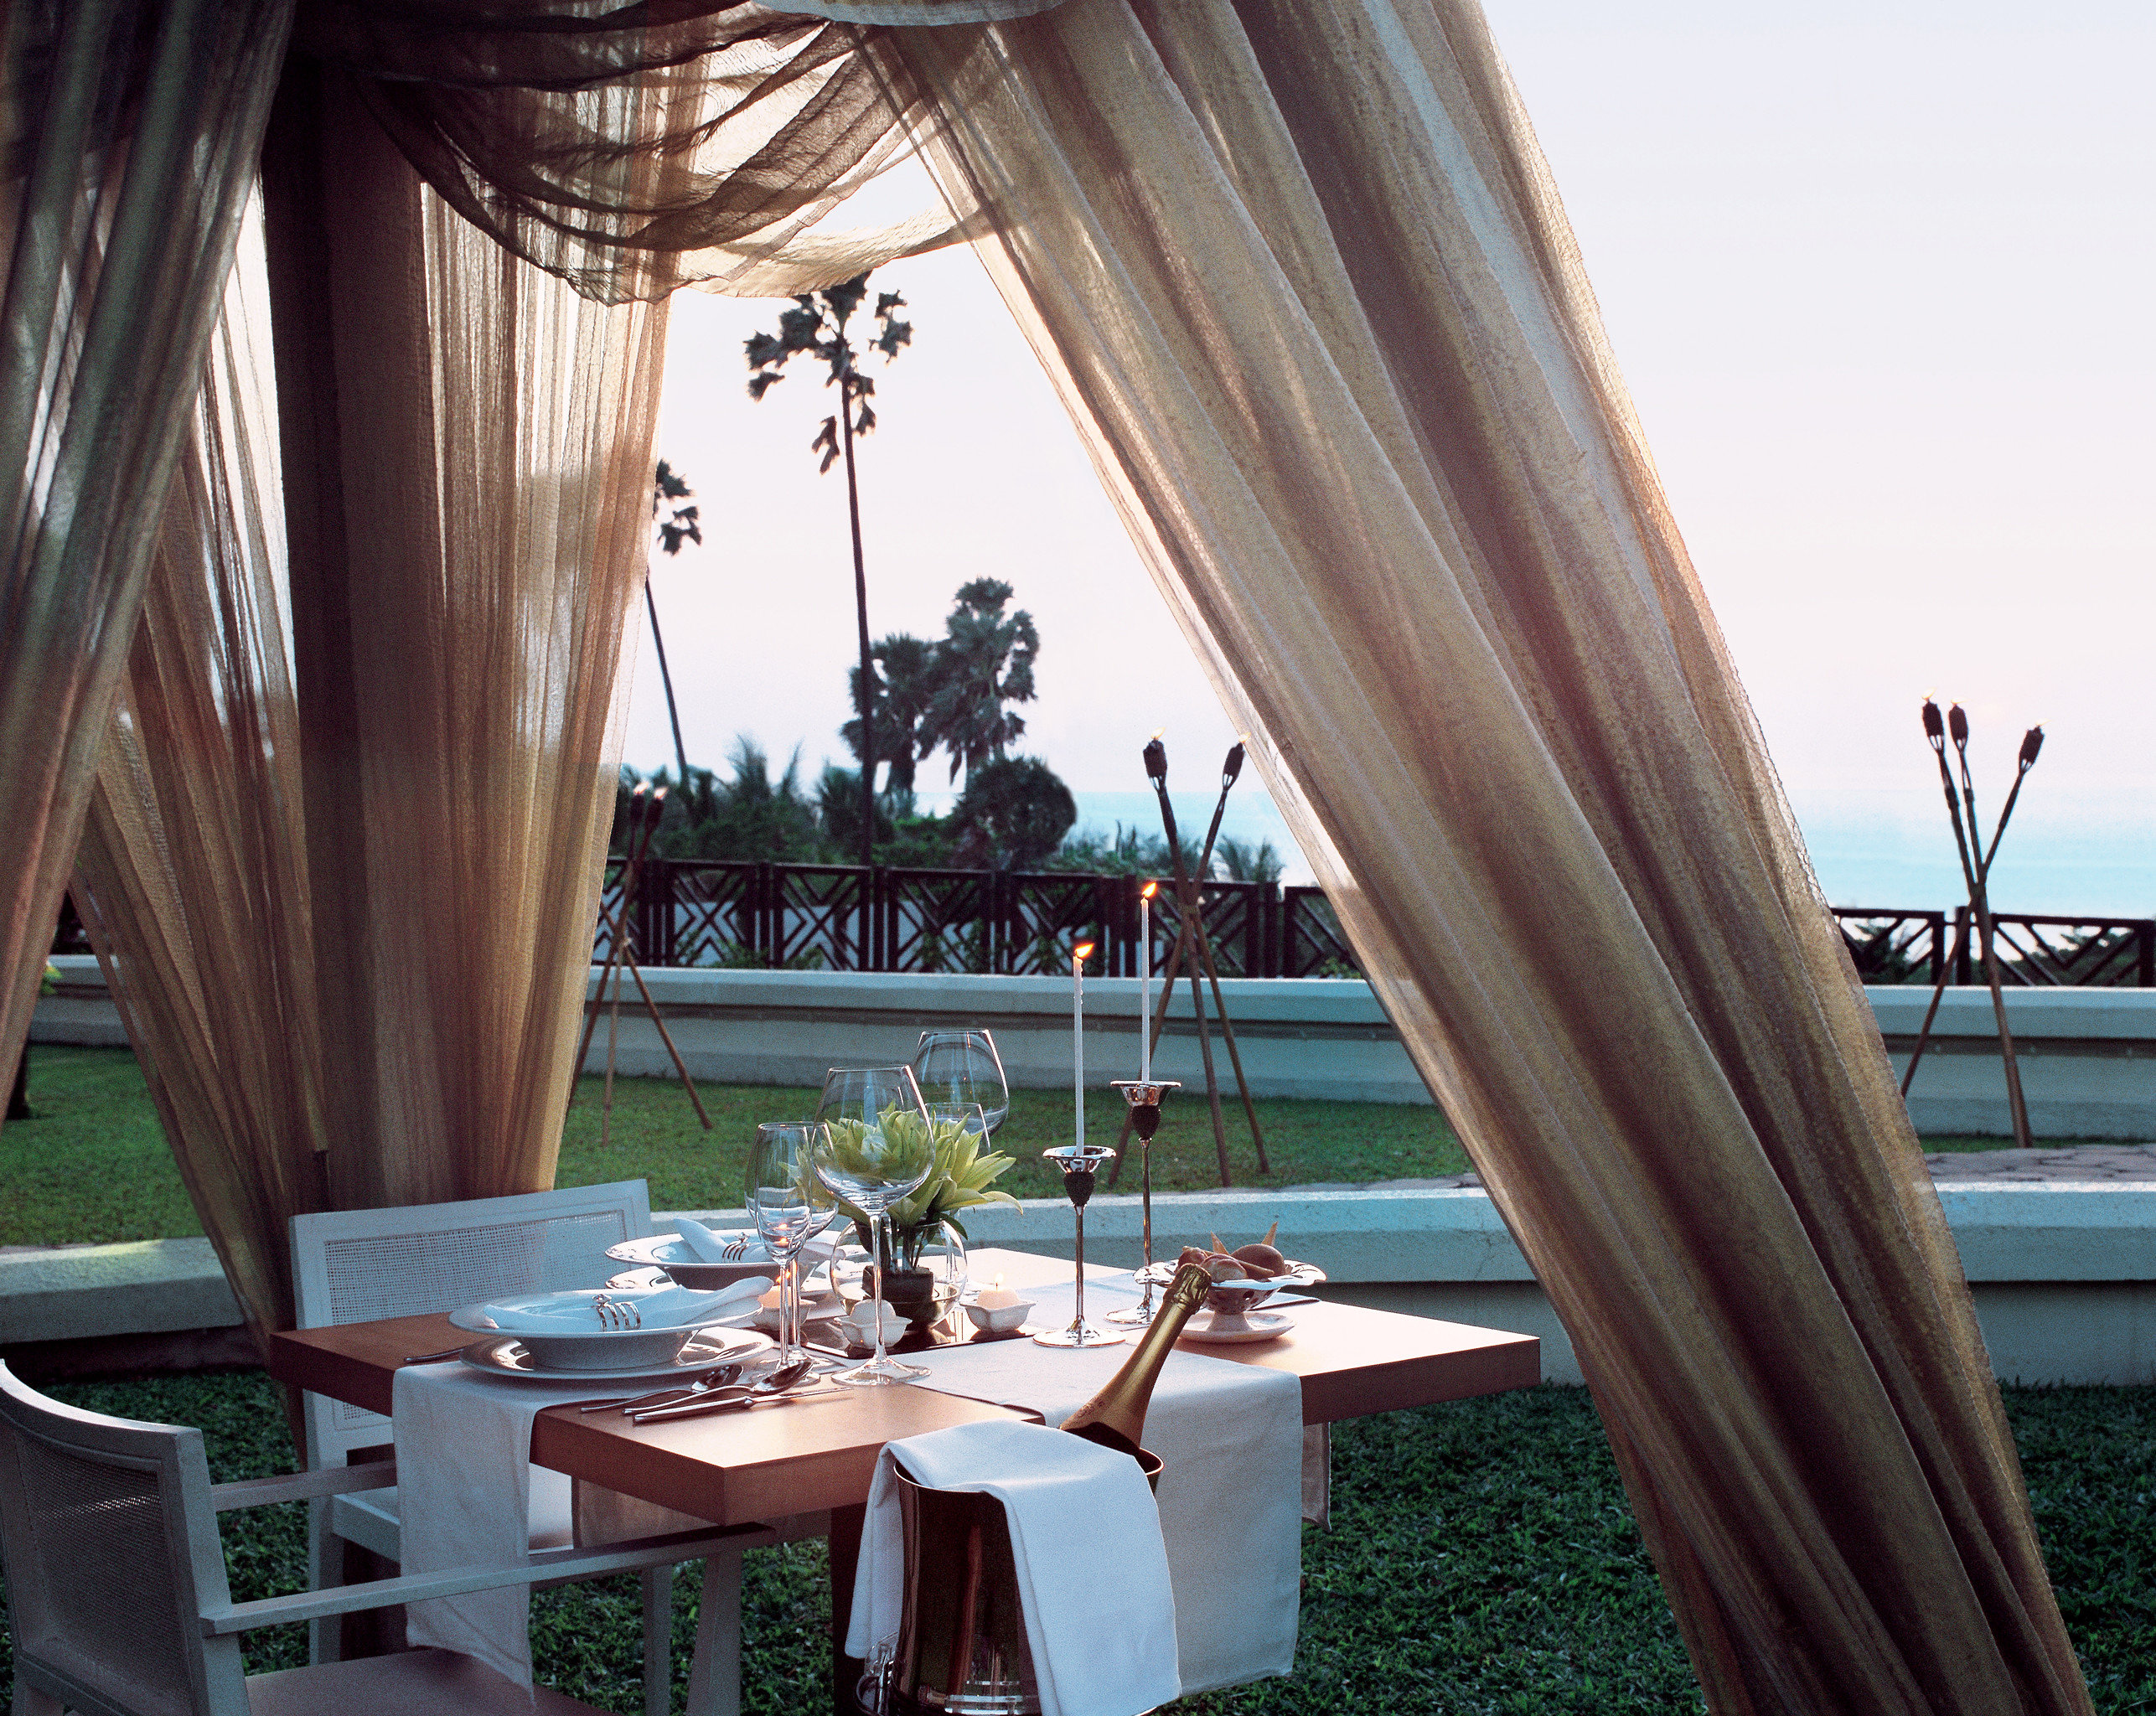 Dining Drink Eat Modern Patio Romantic Terrace Waterfront chair Resort home restaurant curtain overlooking set